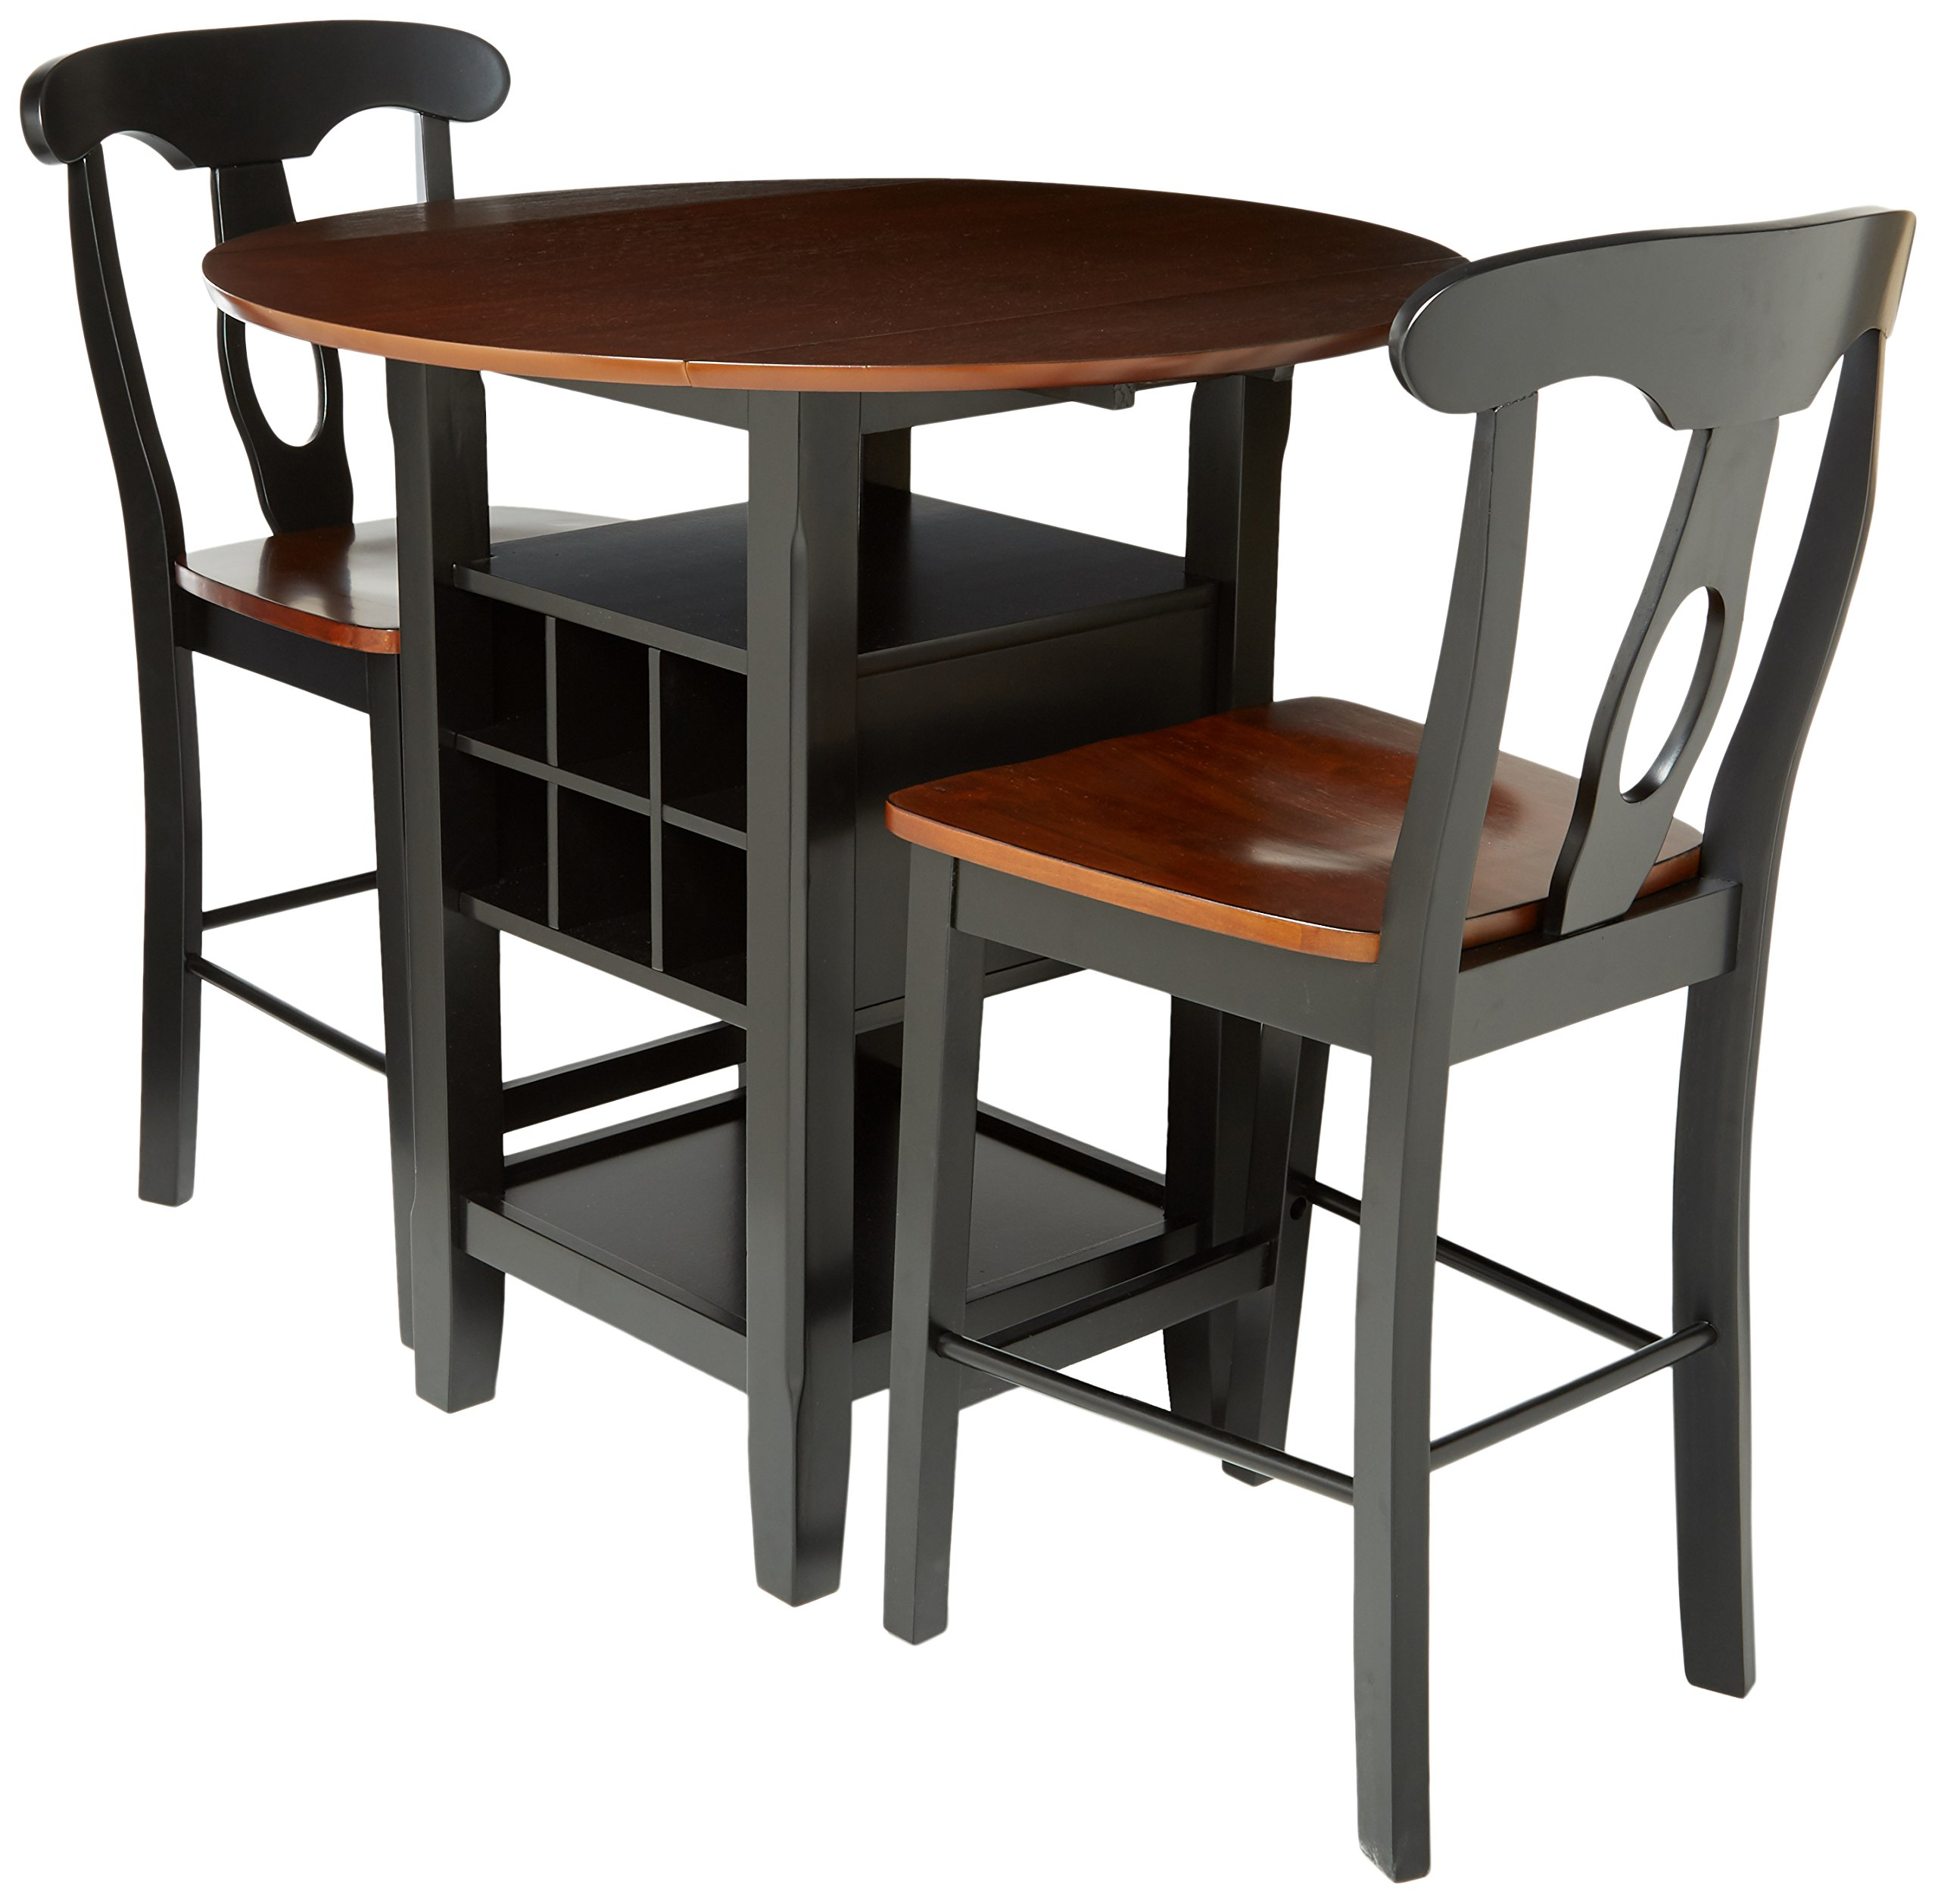 Homelegance Atwood 3-Piece Two Tone Counter Height Set, Black and Espresso